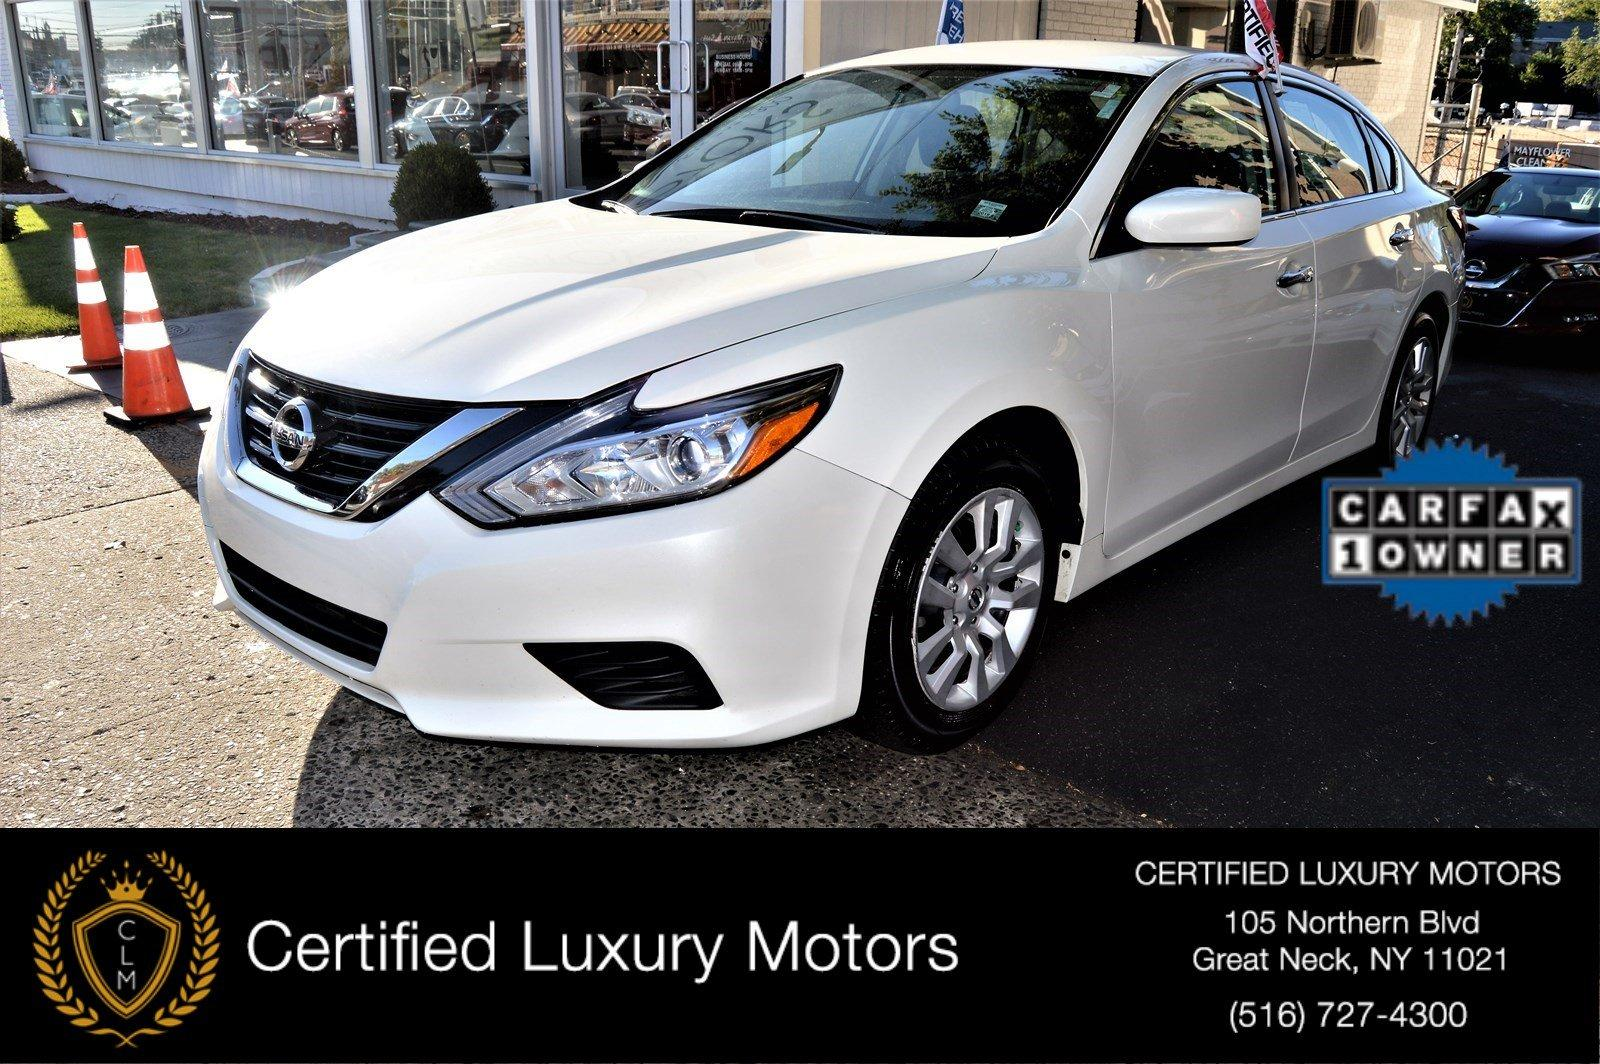 2016 nissan altima 2 5 s stock 5078 for sale near great for Certified luxury motors great neck ny